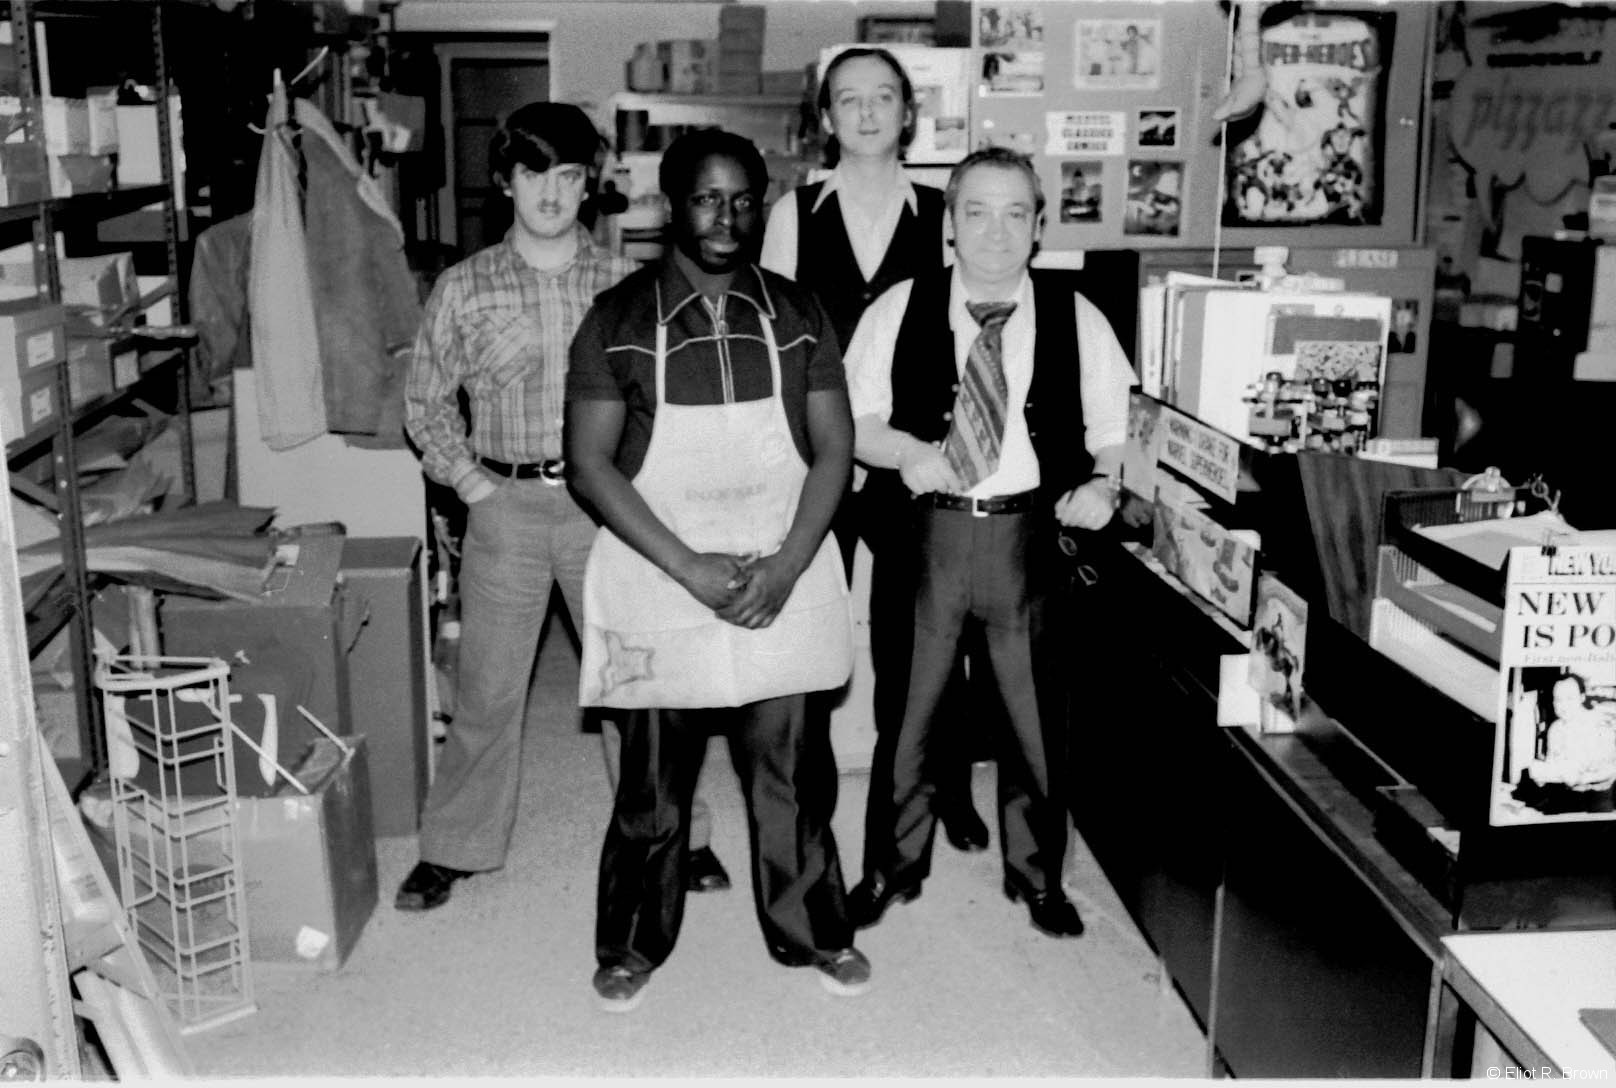 Marvel generated a LOT of mail. These guys made it all move. L-R: John Galvin, Poppy Lopez, Mike Kudzinowski and Tony Cerniglia.